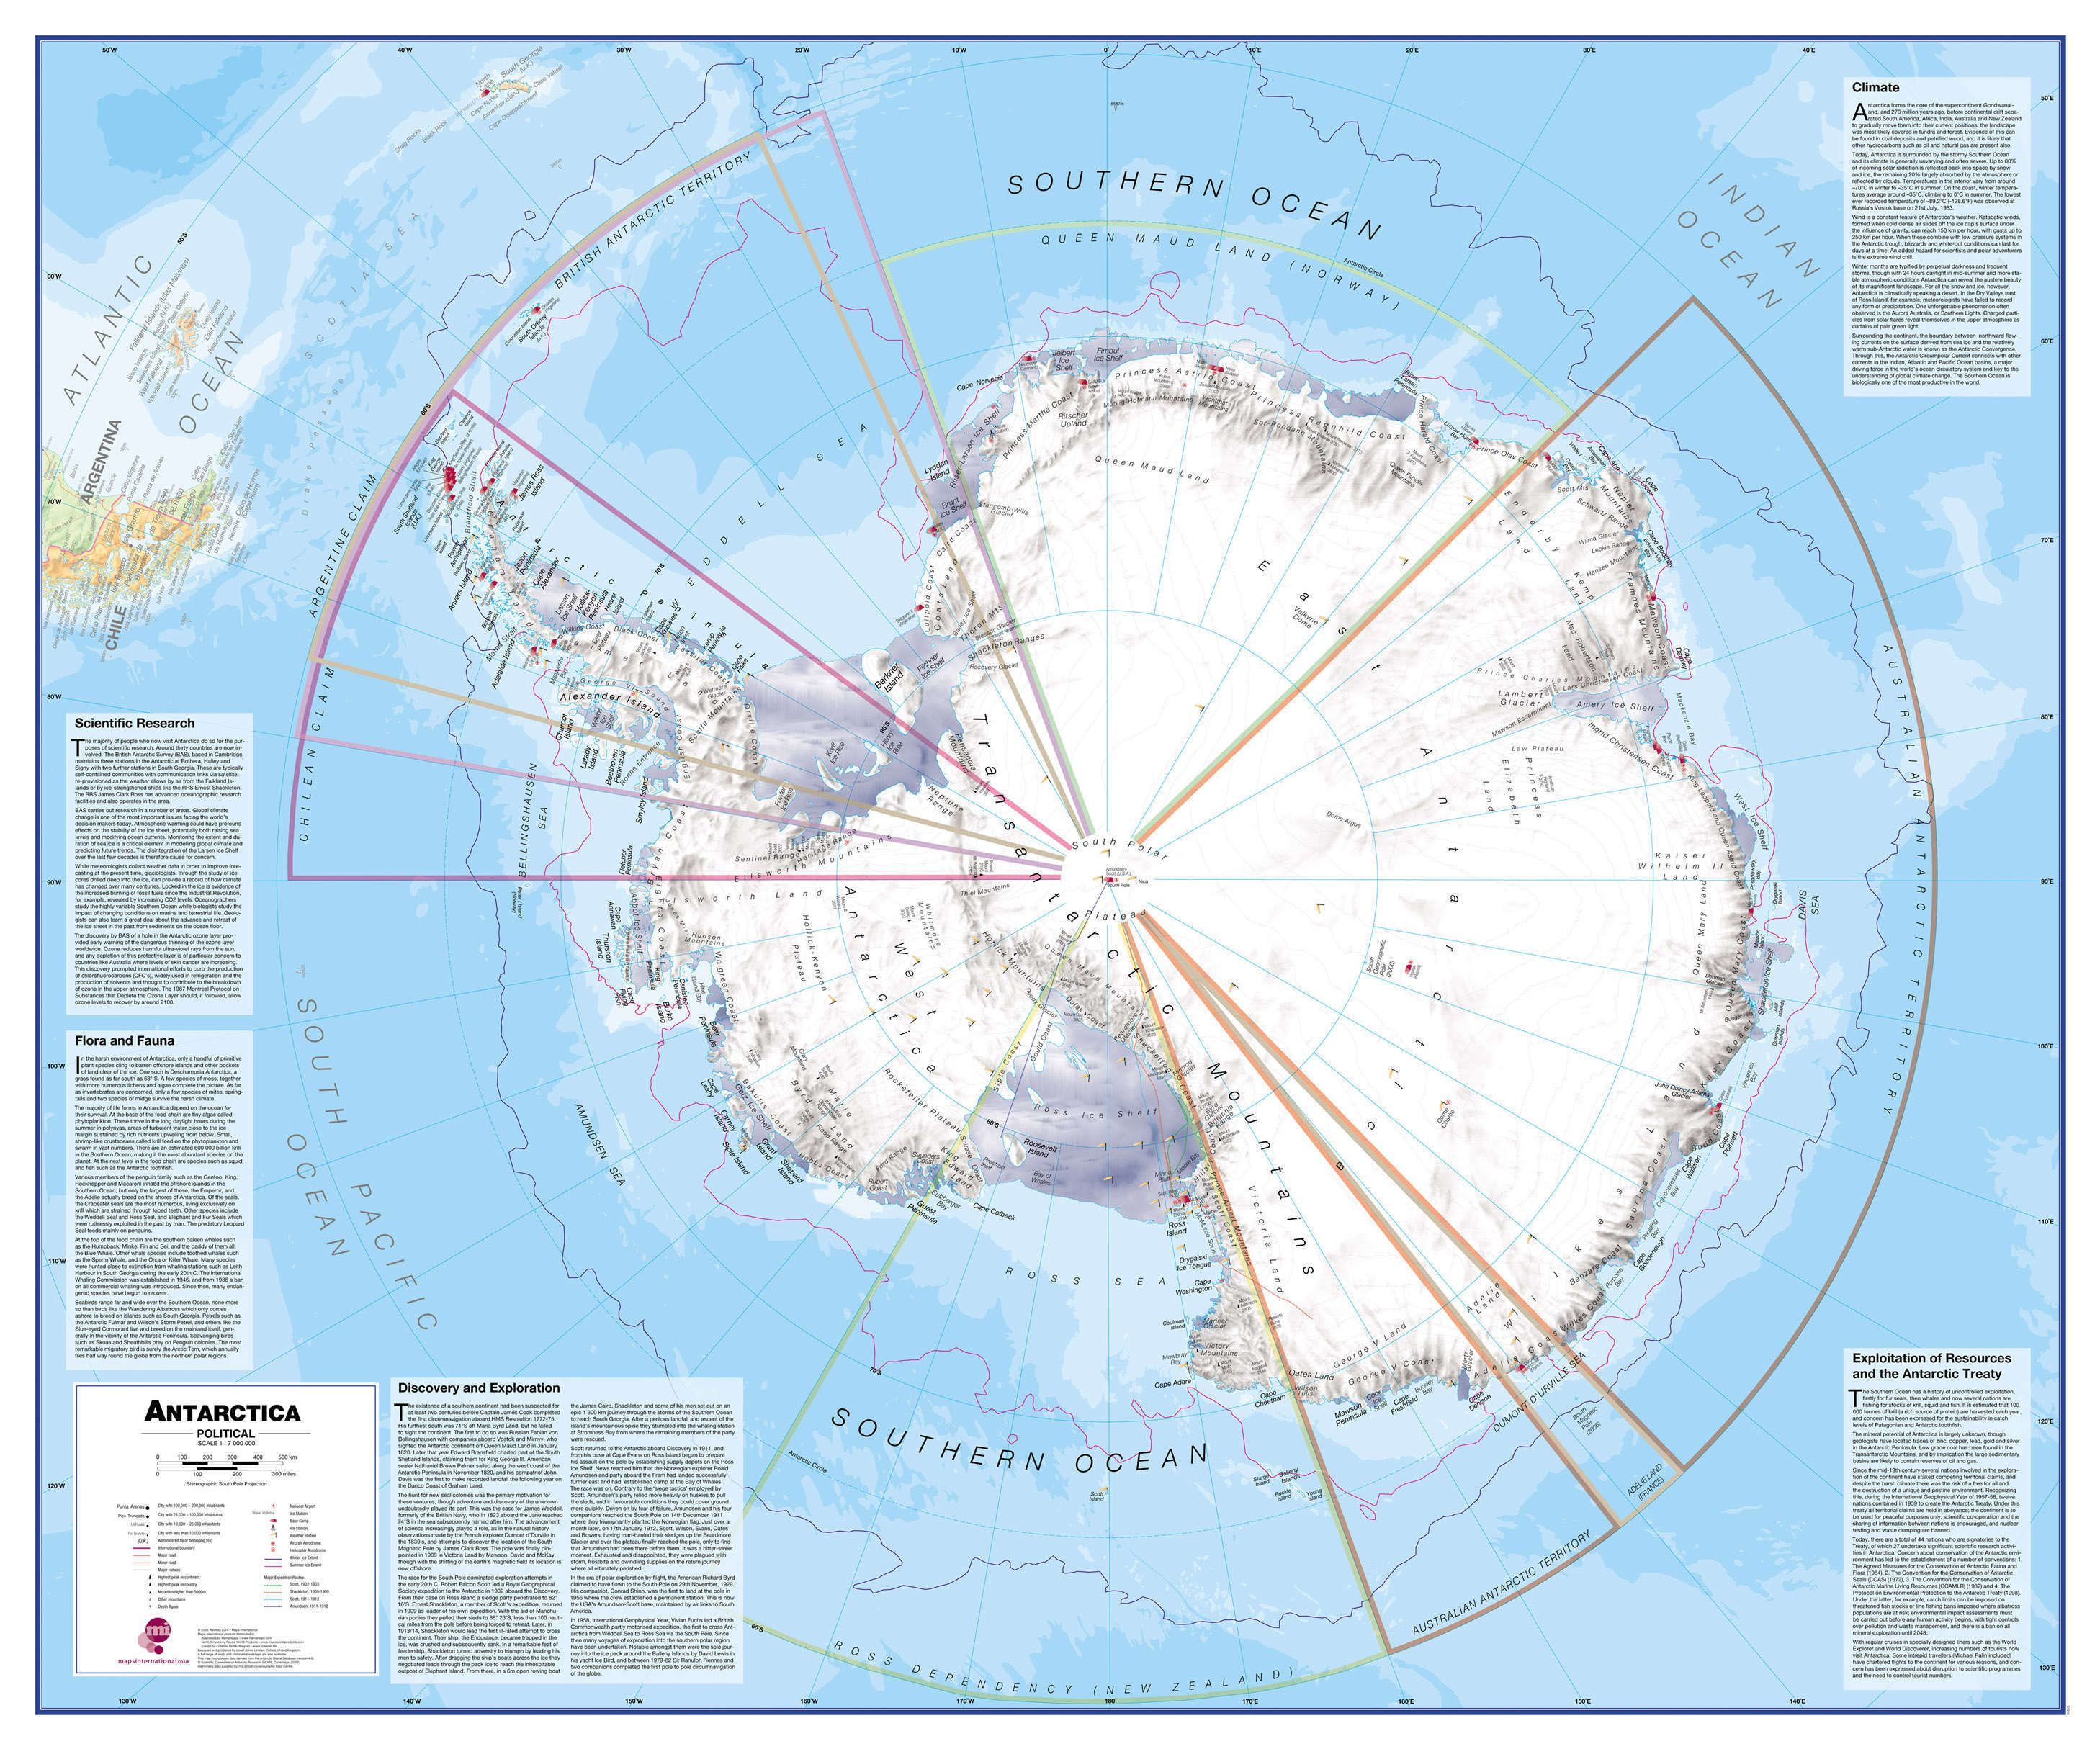 Political Antarctica Wall Map on map of argentina, south america, map of arctic, map of pangea, southern ocean, map of mongolia, map of north pole, map of europe, map of the continents, map of earth, map of south shetland islands, map of western hemisphere, south pole, pacific ocean, map of italy, indian ocean, map of iceland, map of south orkney islands, north america, arctic ocean, map of oceania, map of weddell sea, map of africa, map of antarctic peninsula, map of world, map of australia, map of ross ice shelf, north pole, atlantic ocean,